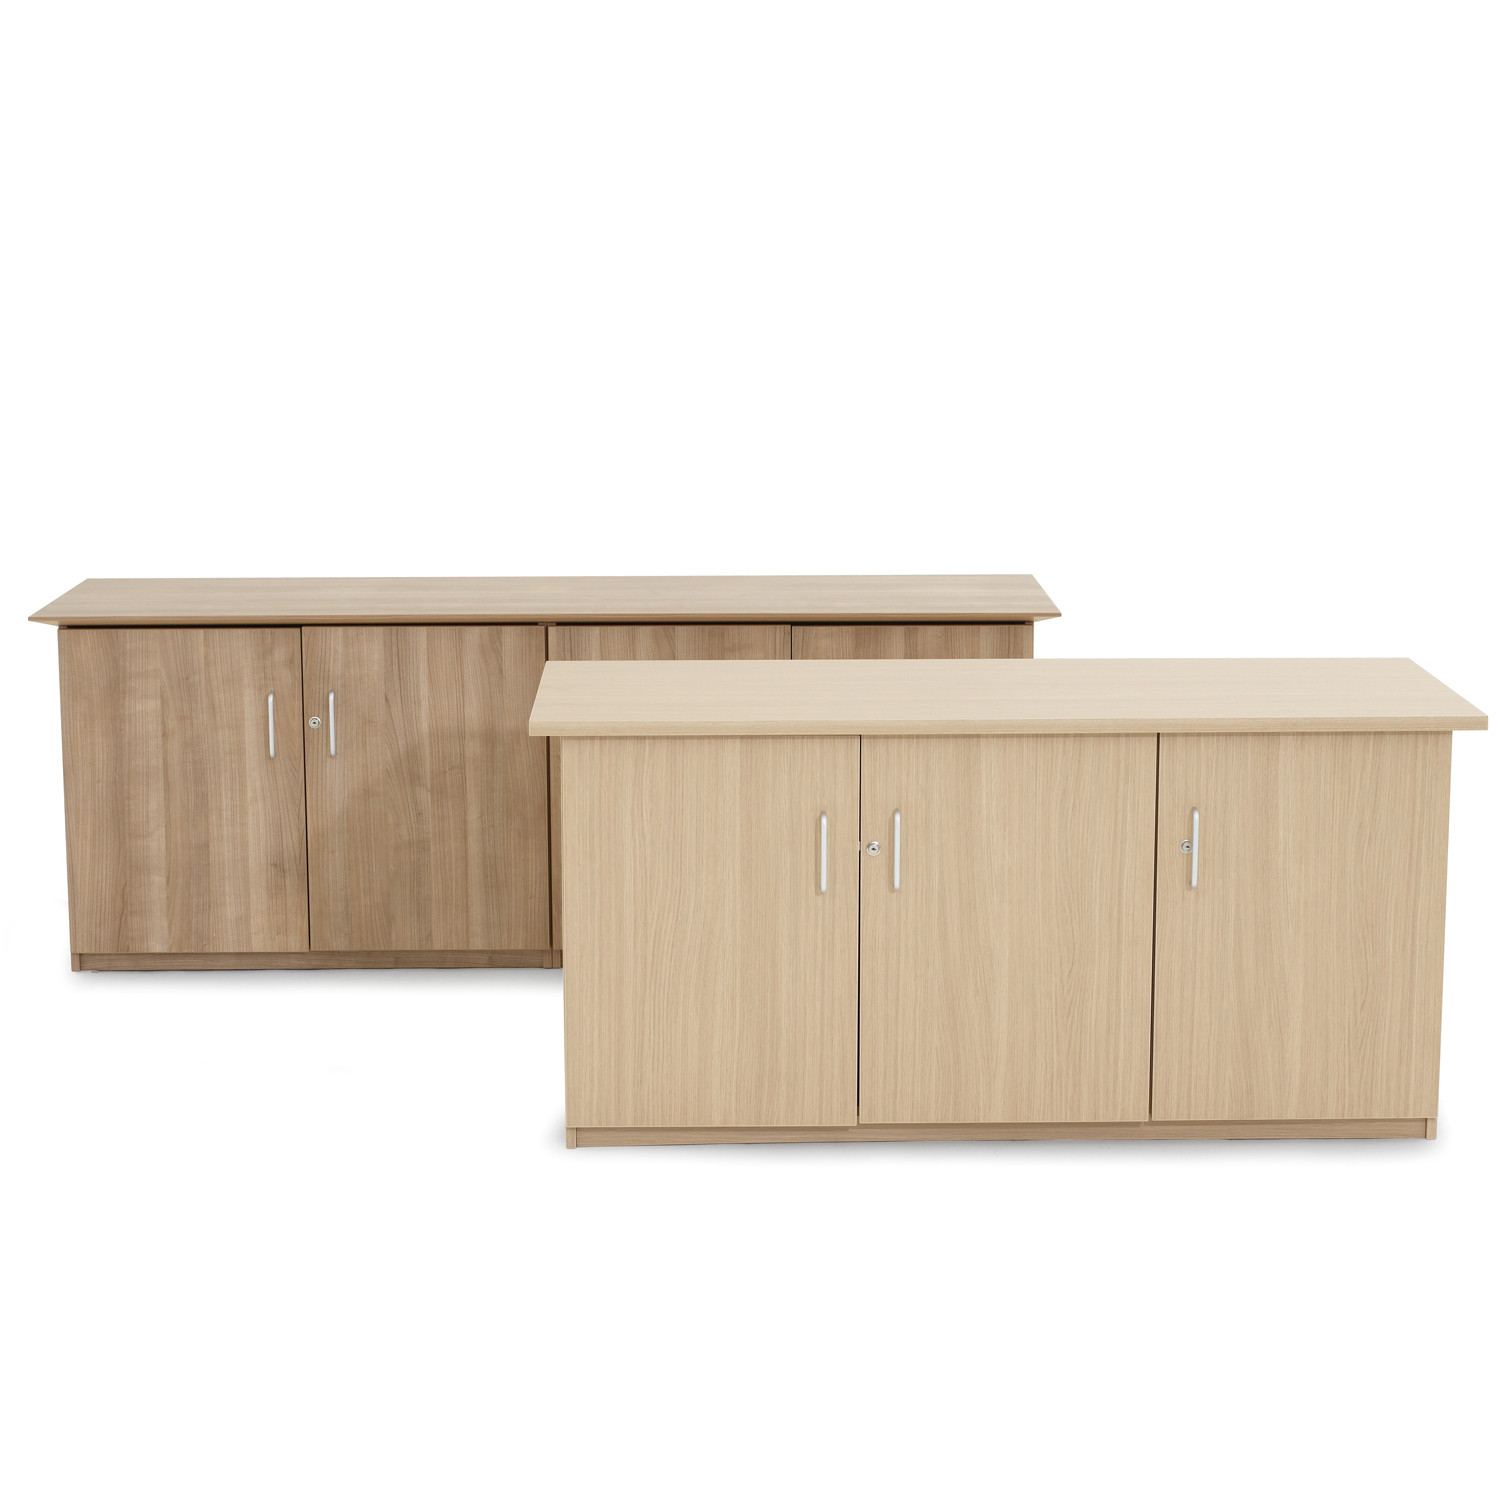 Pars Credenzas Storage Credenza Apres Office Furniture